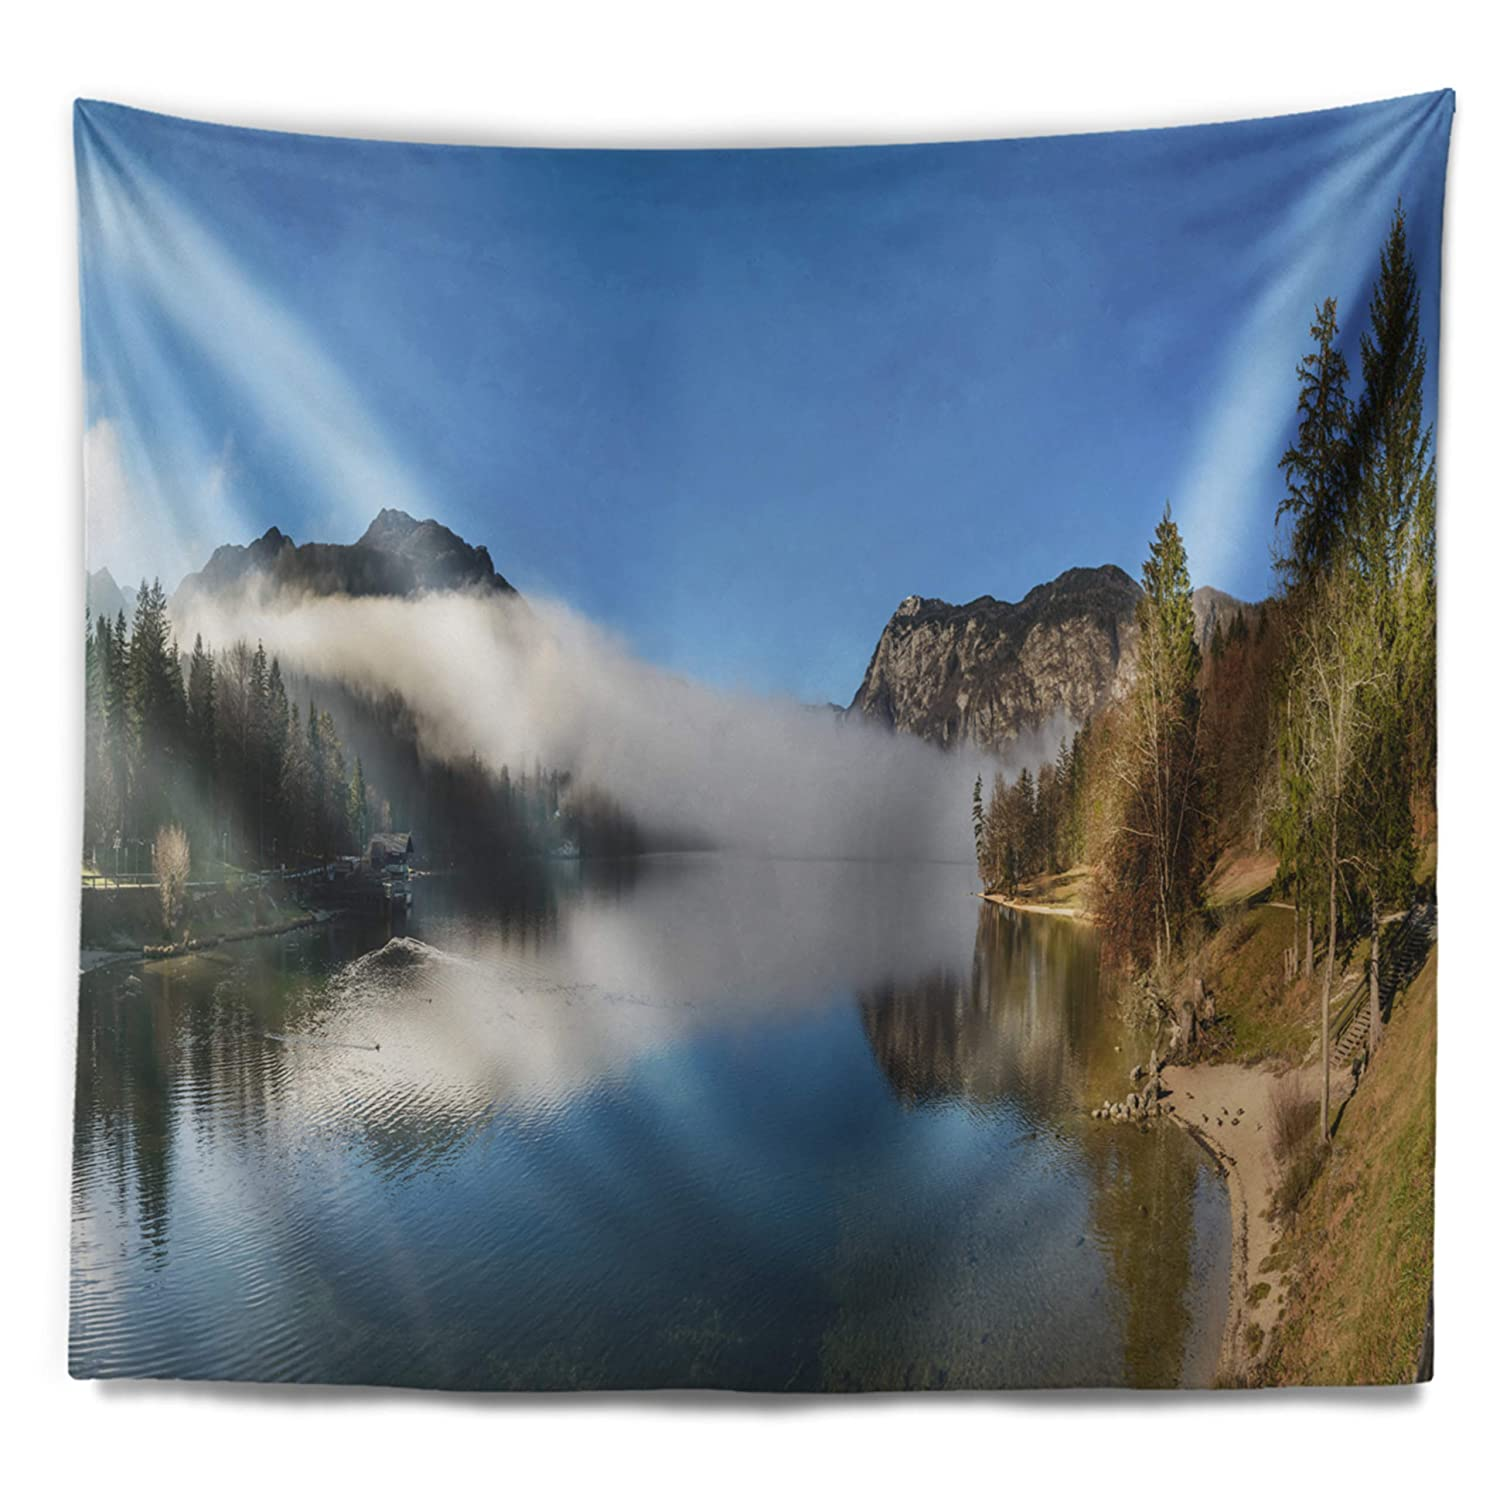 60 in Designart TAP14731-60-50  Bohinj Lake Panorama Seashore Blanket D/écor Art for Home and Office Wall Tapestry Large x 50 in Created On Lightweight Polyester Fabric